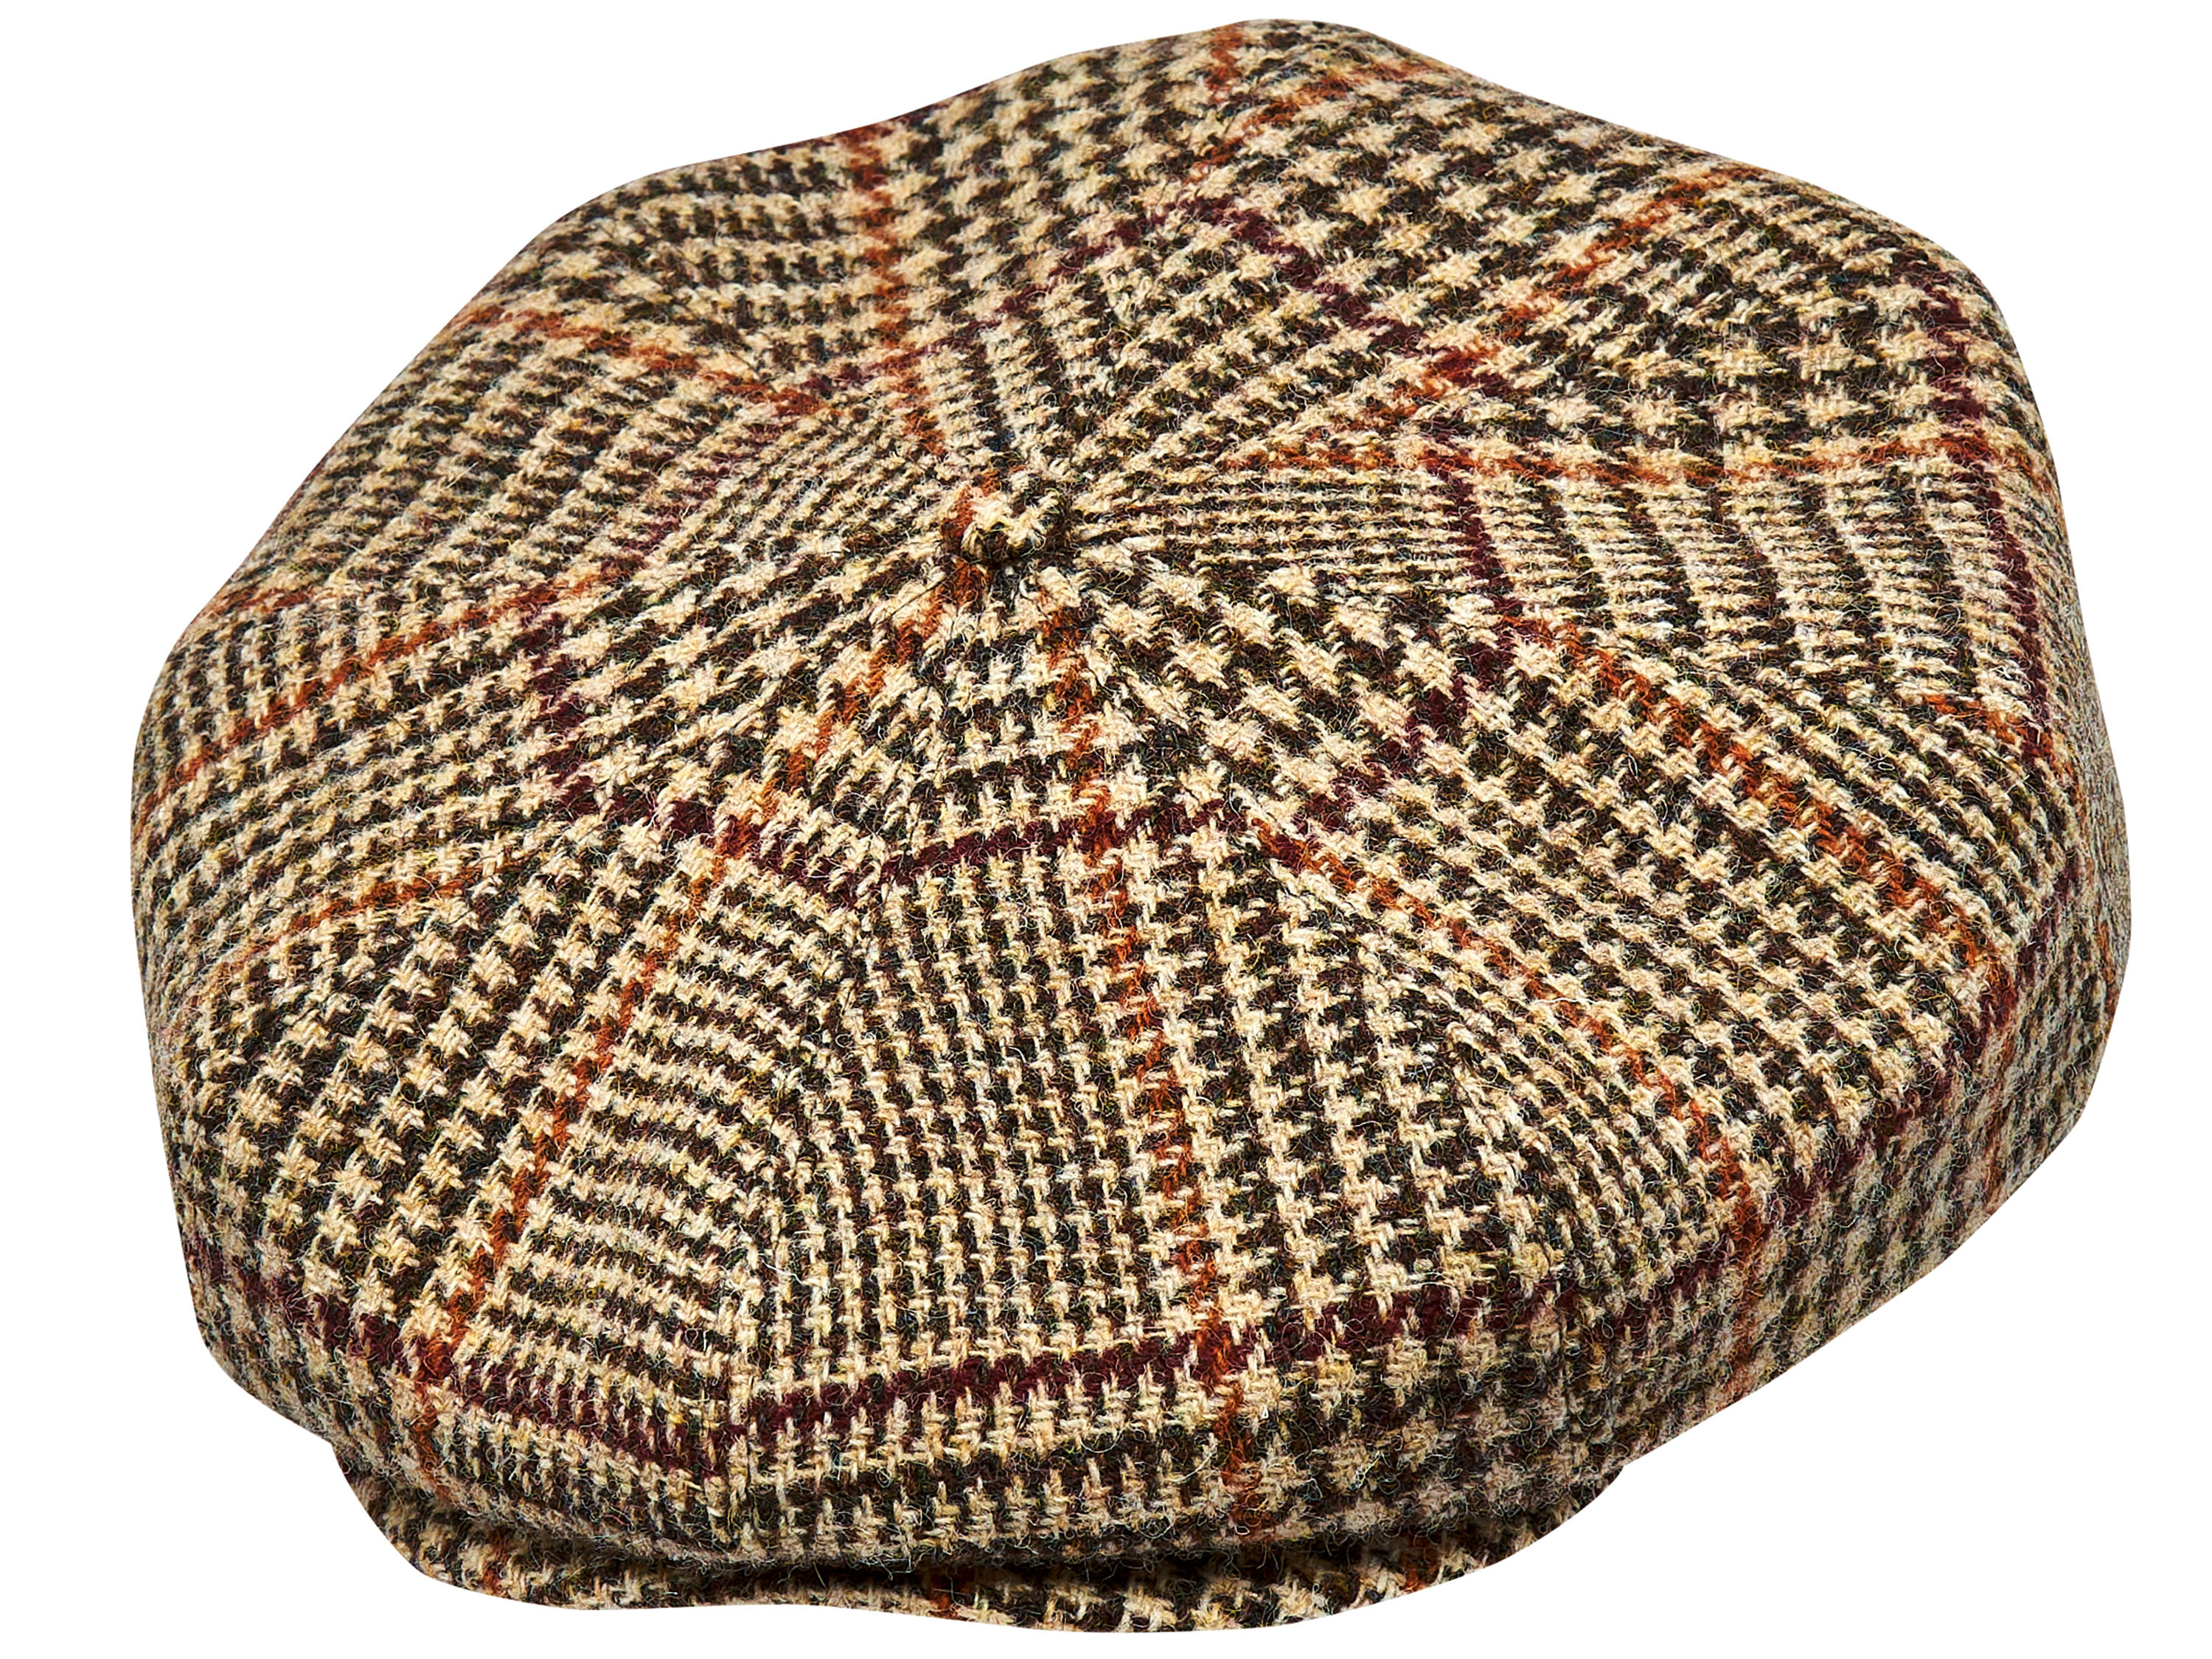 16b3f27dbeb33 Ivy Five - winter   autumn man flat cap Harris Tweed flat cap - black    gray herringbone